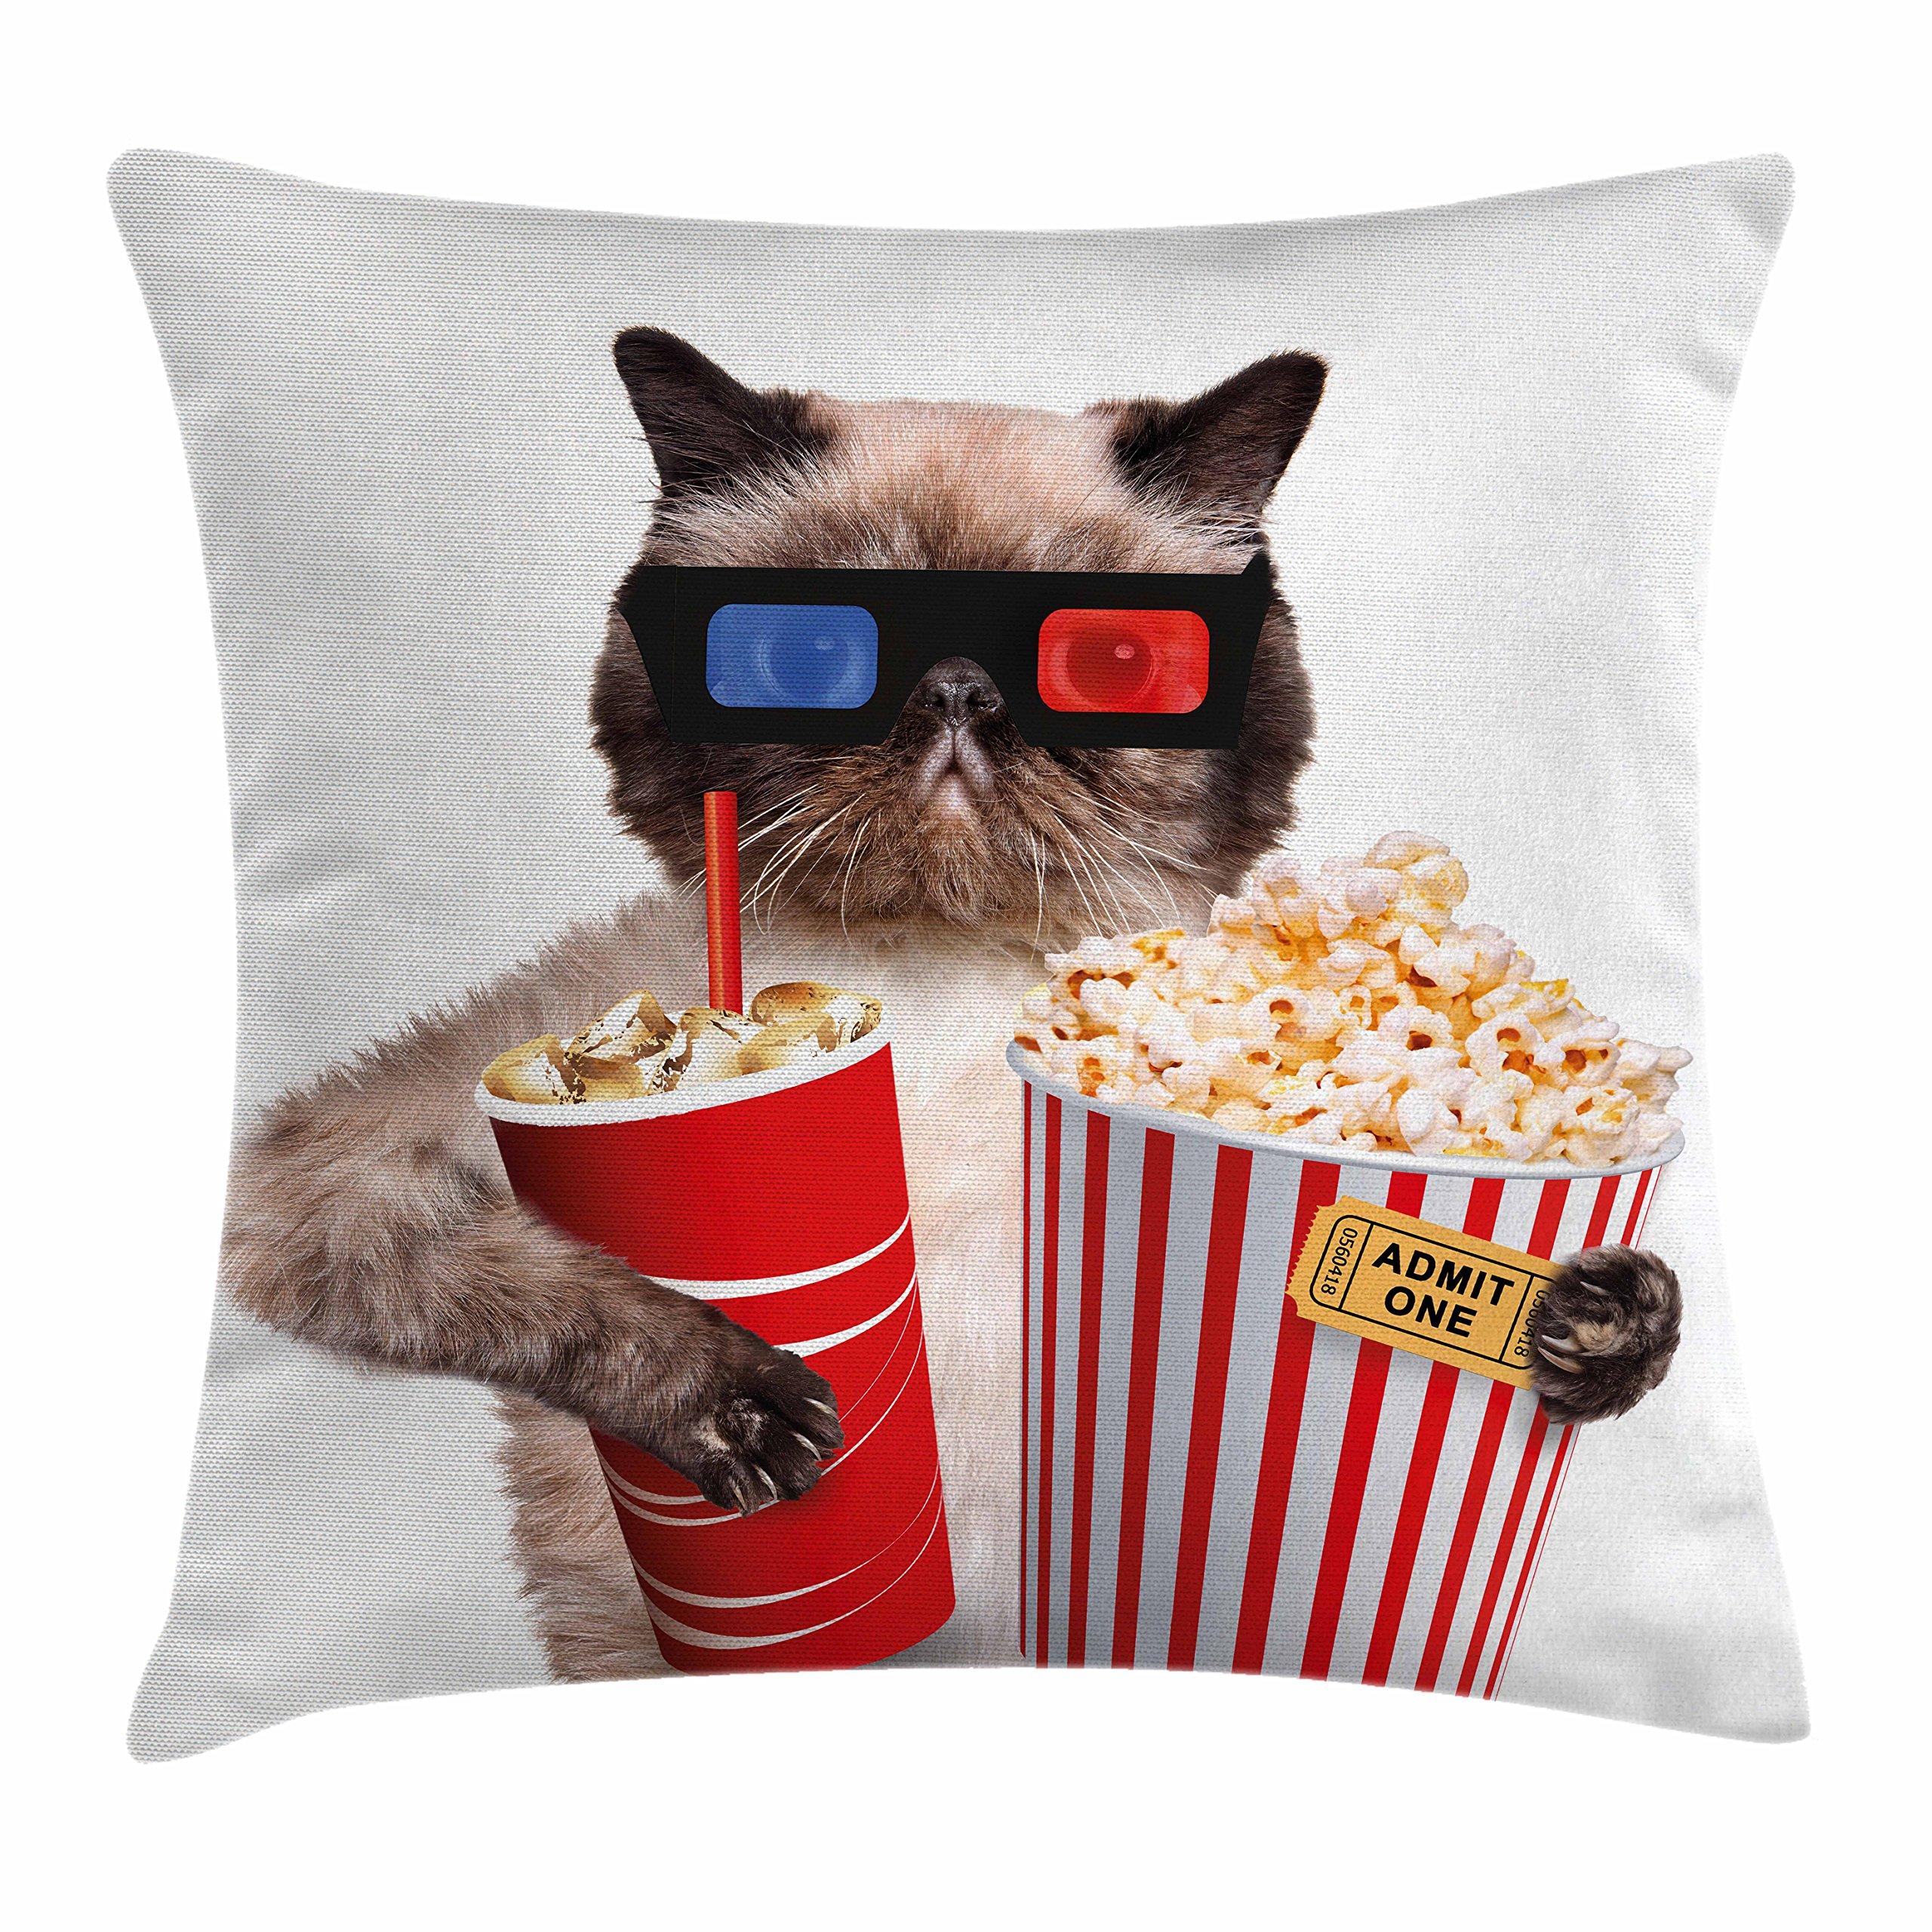 Ambesonne Movie Theater Decor Throw Pillow Cushion Cover, Cat with Popcorn and Drink Watching Movie Glasses Entertainment Cinema, Decorative Square Accent Pillow Case, 24 X 24 inches, Multicolor